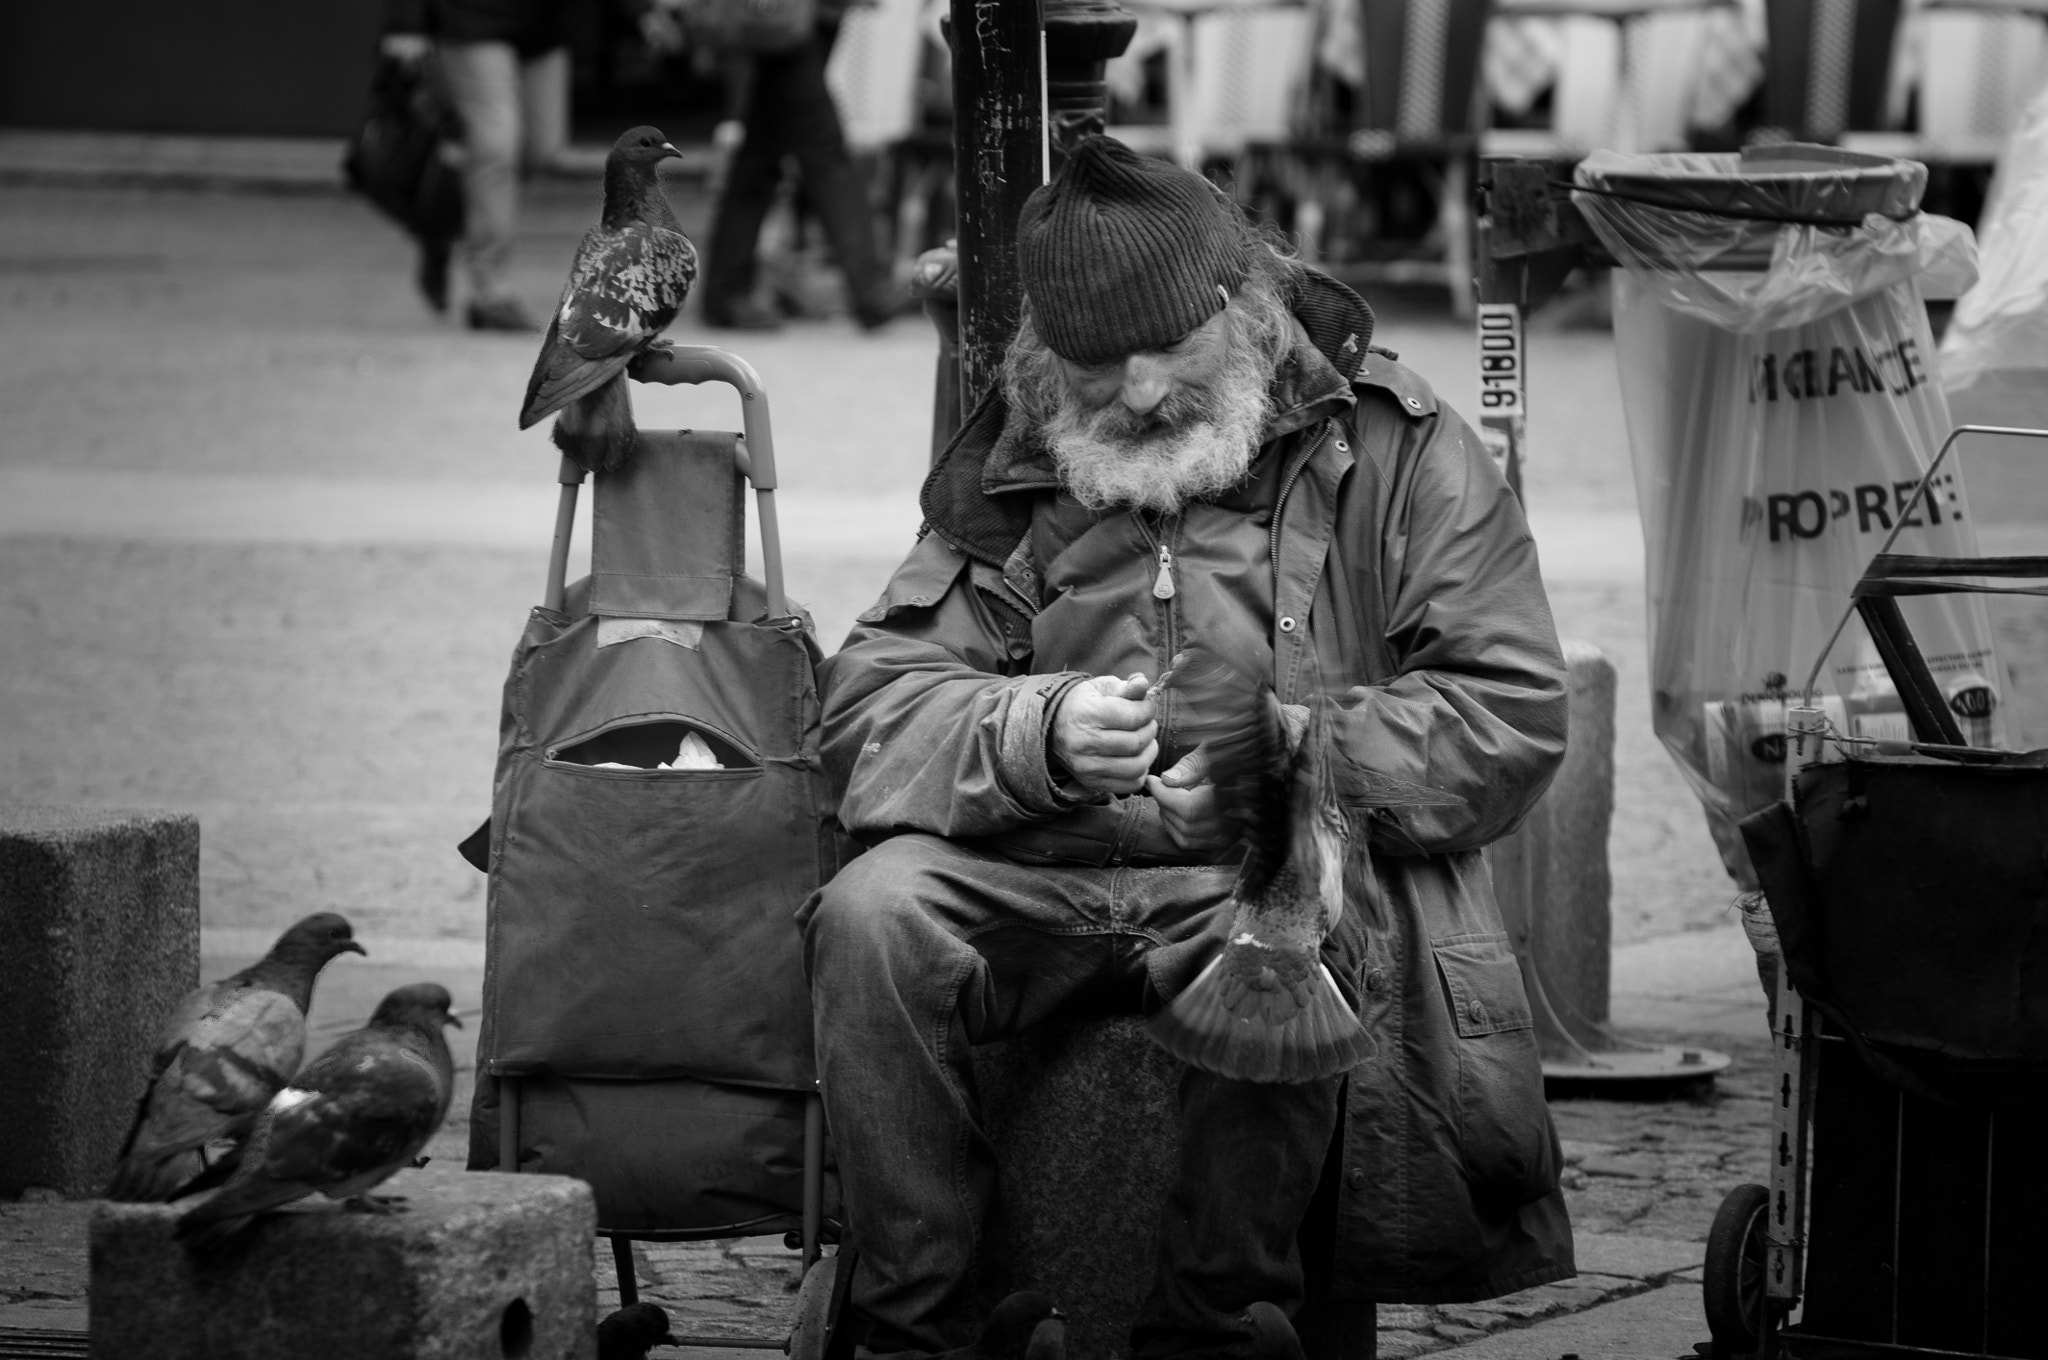 Photograph Misery on the streets by Patrick Guillon on 500px